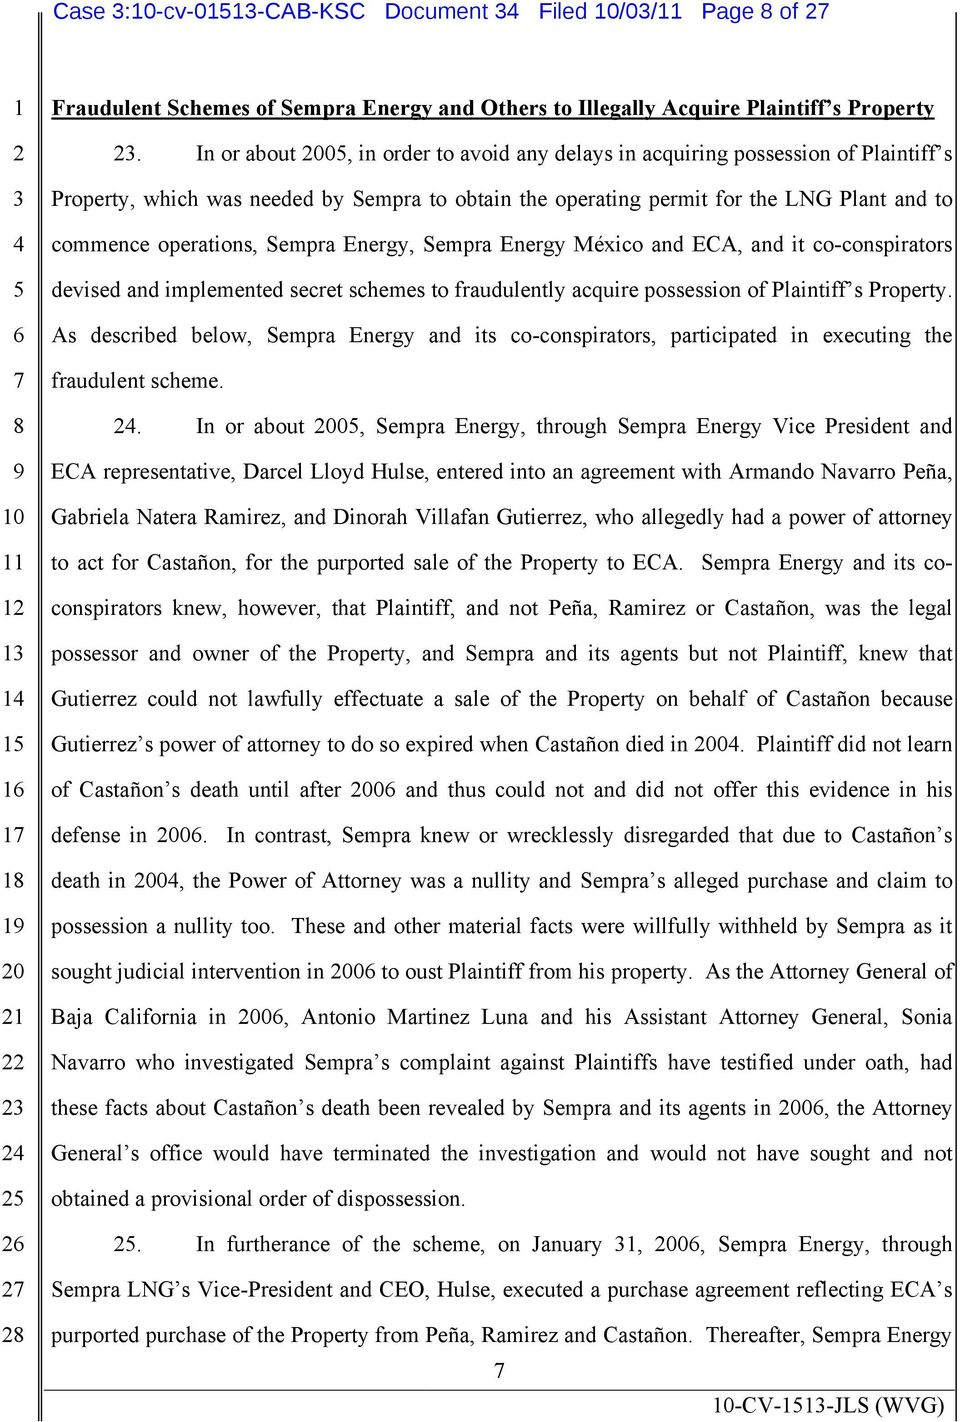 Sempra Energy, Sempra Energy México and ECA, and it co-conspirators devised and implemented secret schemes to fraudulently acquire possession of Plaintiff s Property.